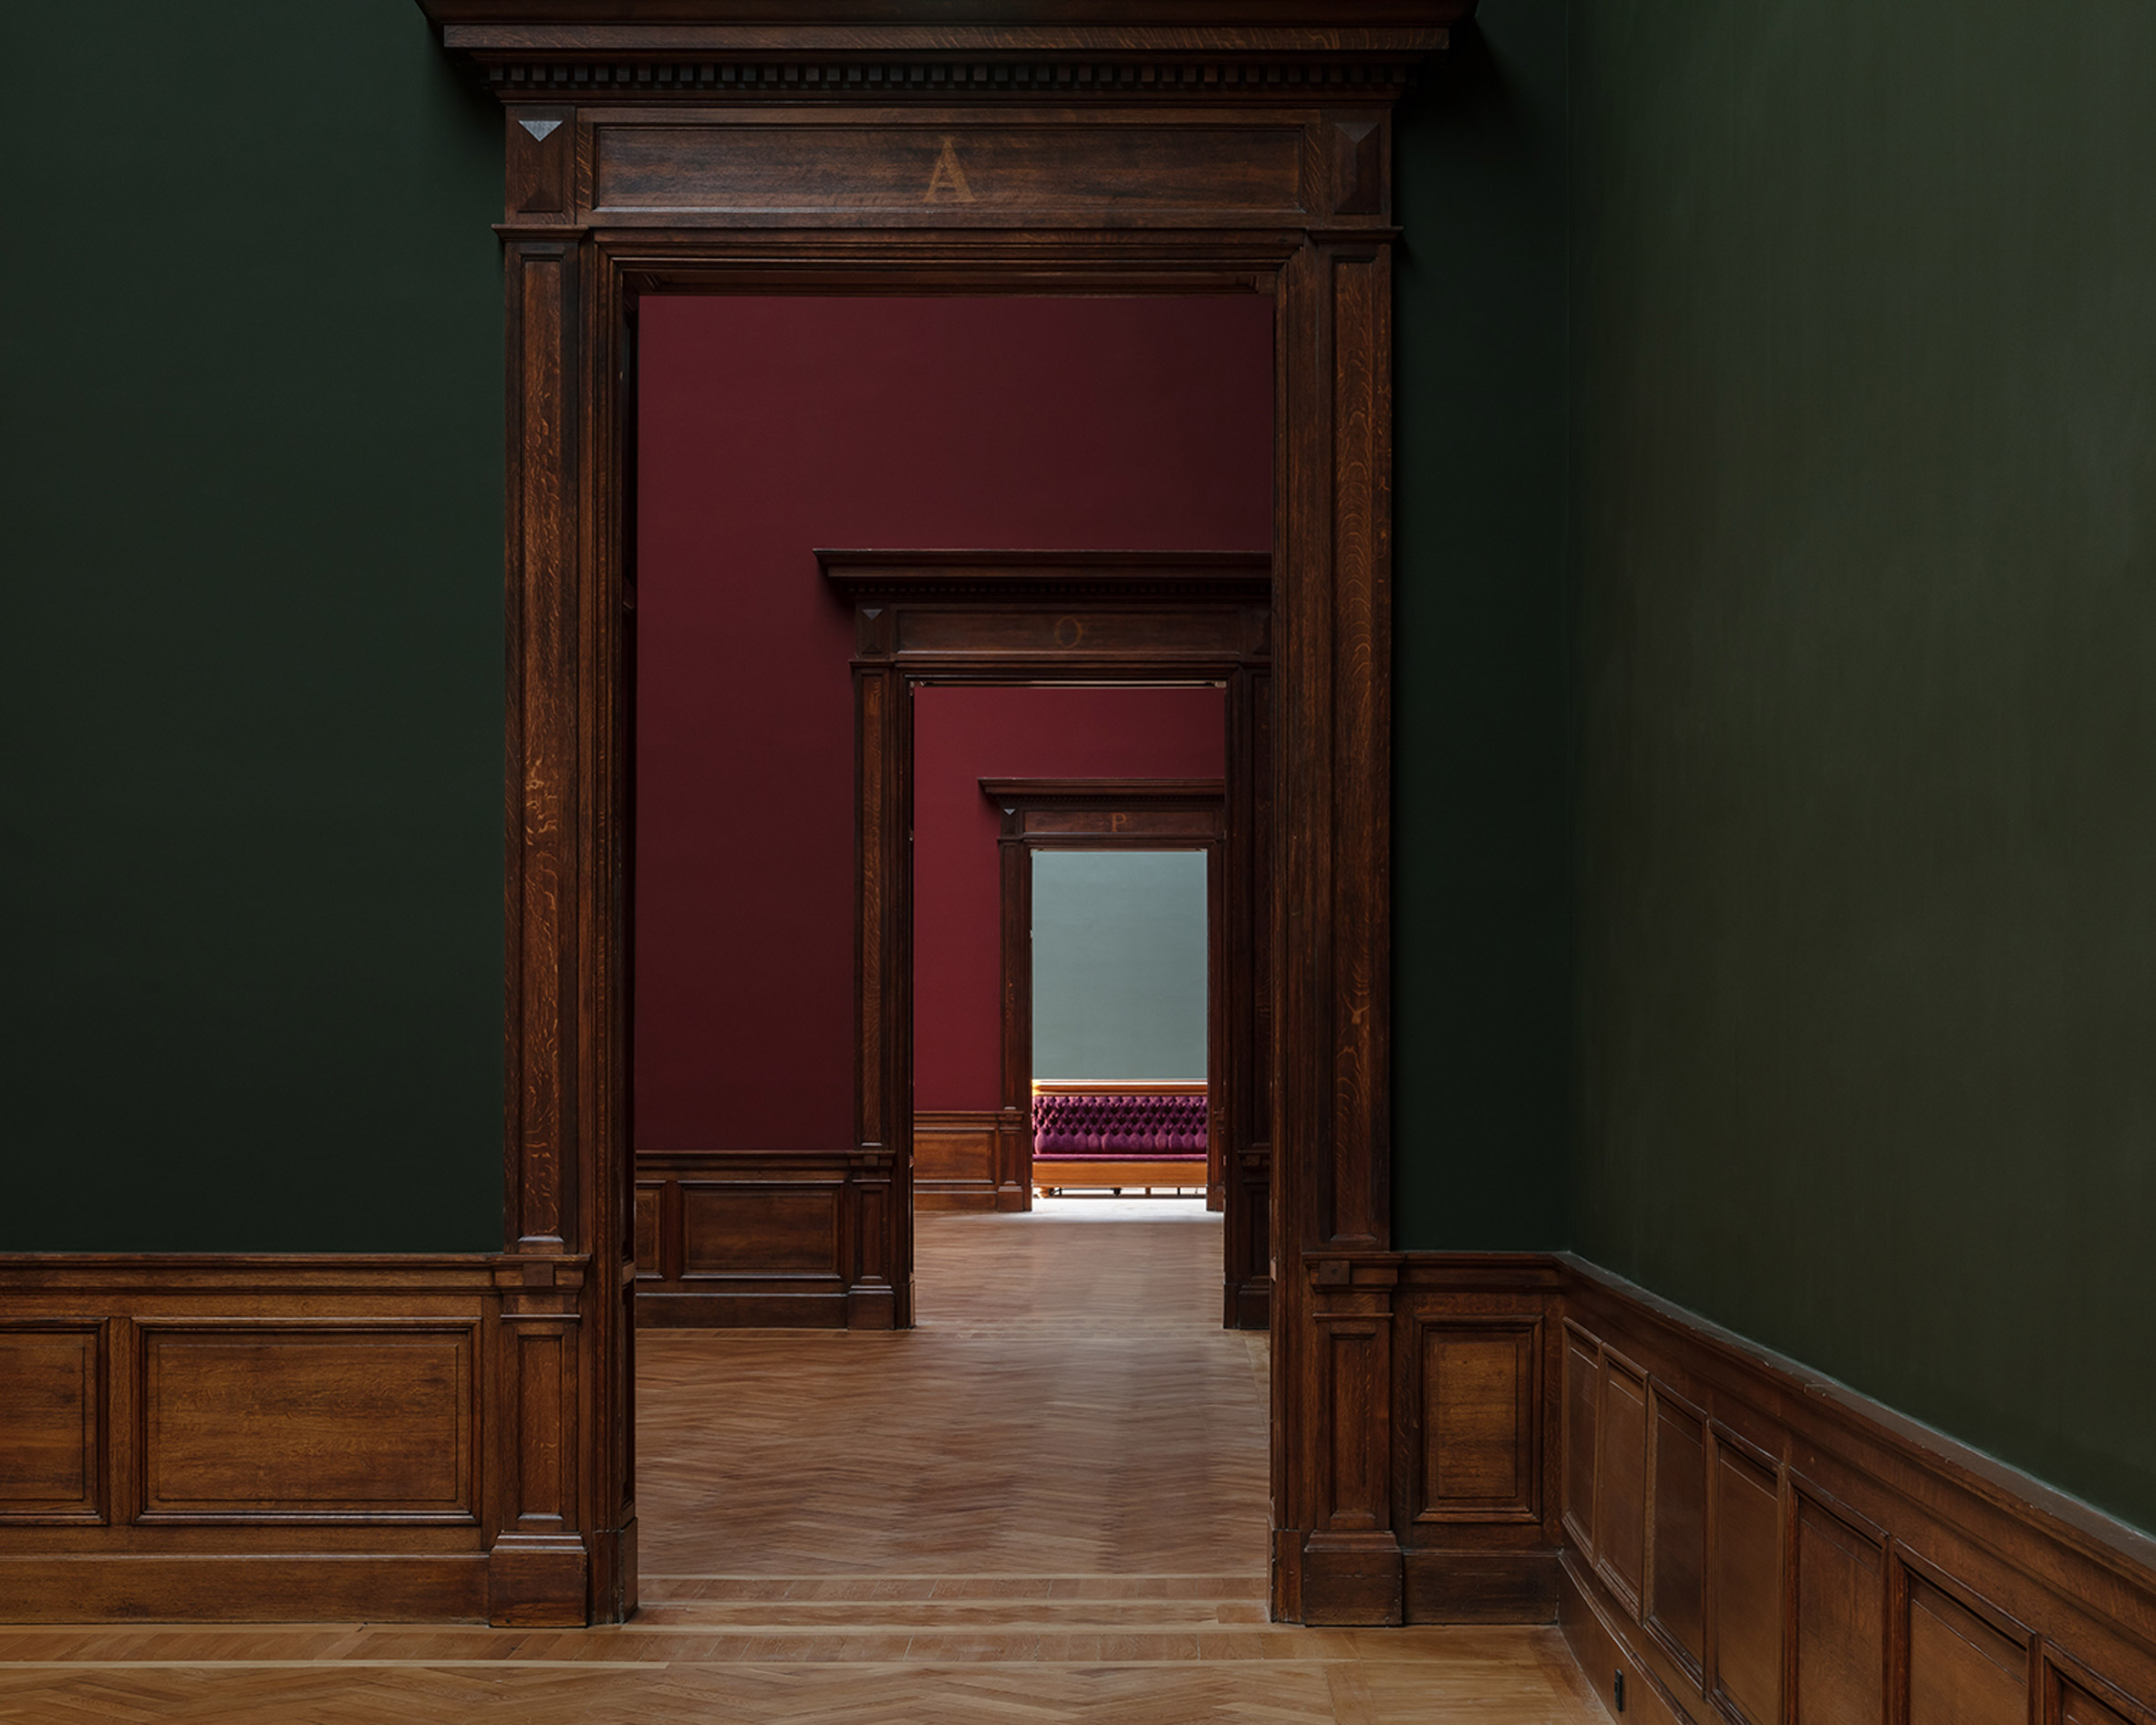 Dark green and red walls in restored 19th-century exhibition halls of Royal Museum of Fine Arts Antwerp